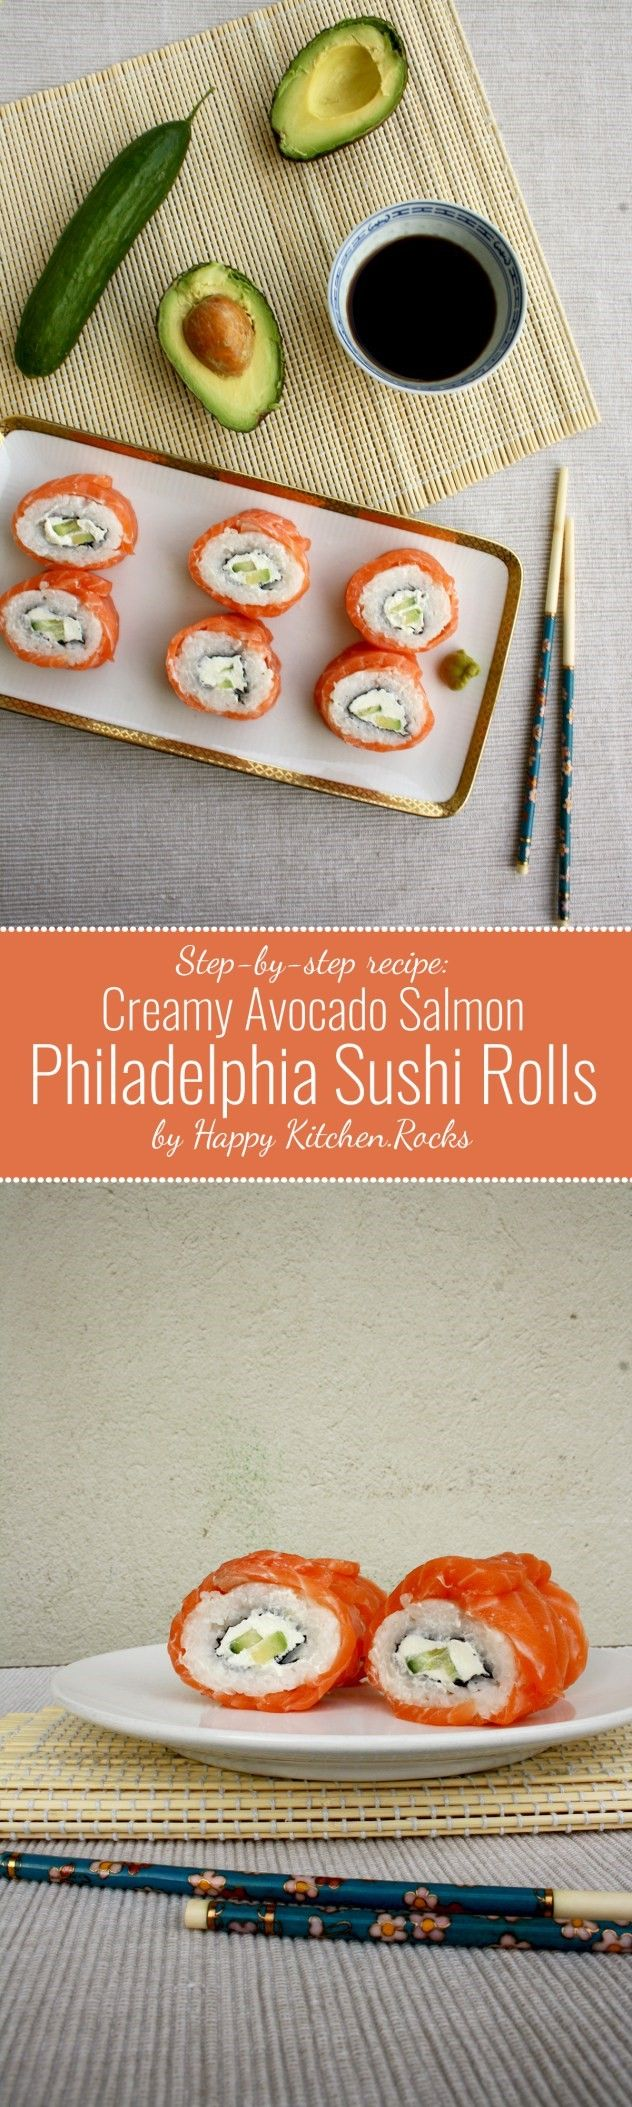 Creamy Avocado Salmon Philadelphia Sushi Rolls: A step-by-step recipe of the most popular sushi rolls with salmon, avocado and cream cheese. The best you can do with only 6 ingredients! (Homemade Cheese Rolls)